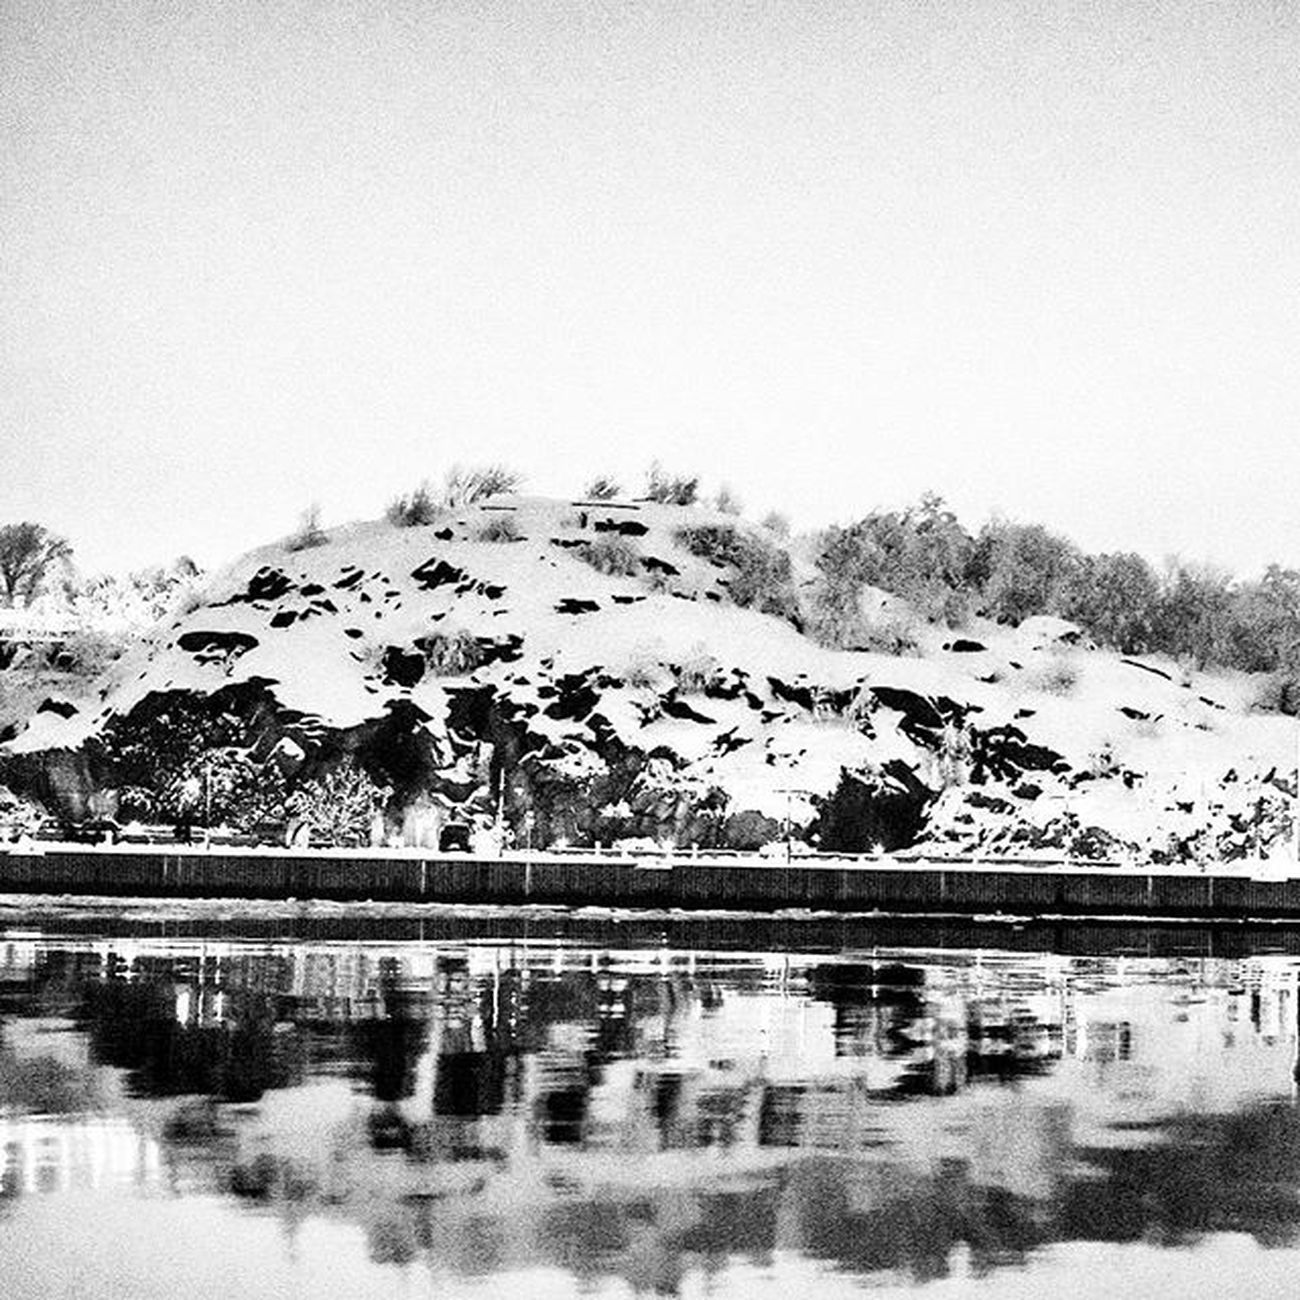 📷❄🗻 Nightshot Night Boattrip Boat Water Tagsforlikes Likes Blackandwhite Snowmountain Mountains Watermirror Trip Pic Sweden Gothenburg GBG Awesome Photo Nightphotography Nightphoto View Sea Perfect Goteborg Båttur sverige kväll spegel hav bild @awesome_pixels @exaperture @gothenburg_sweden @swedenimages @goteborgcom @ilovegbg